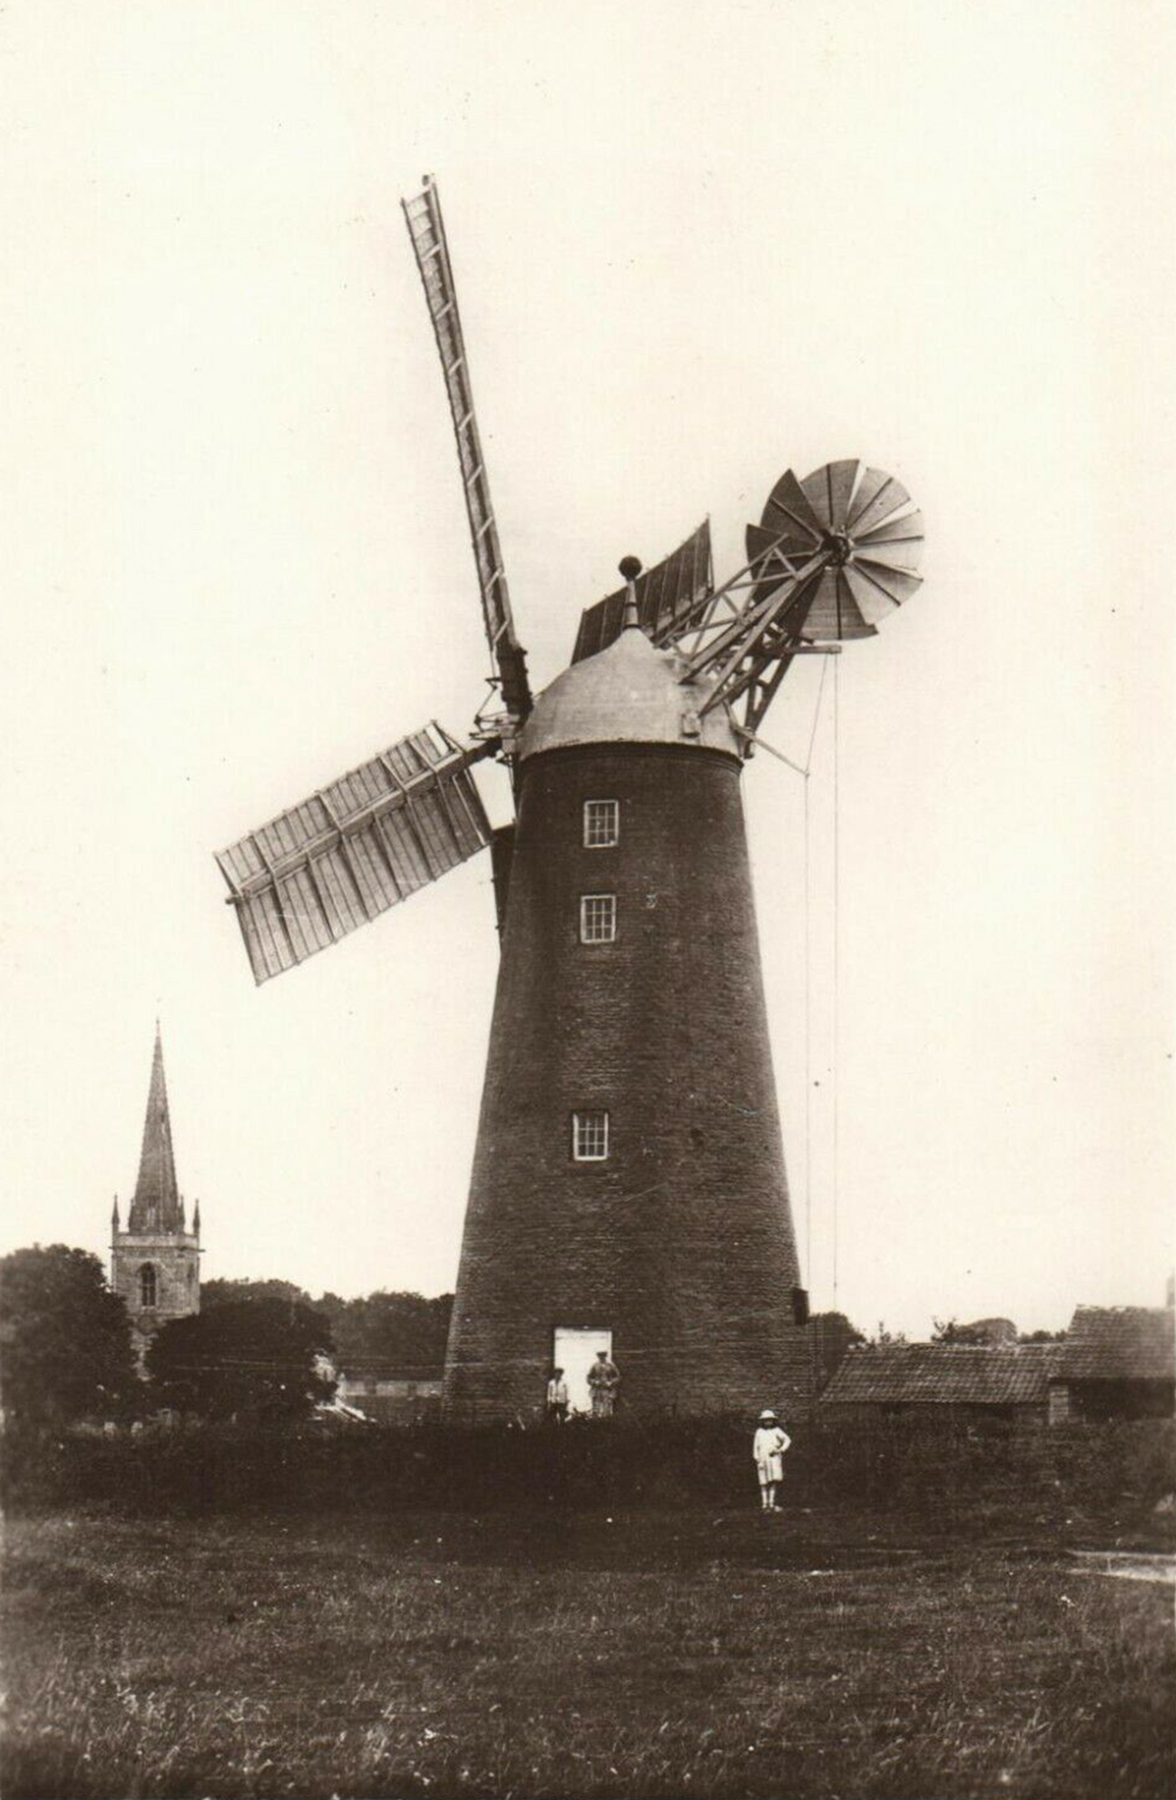 Waltham on the Wolds - Tower Mill - Then